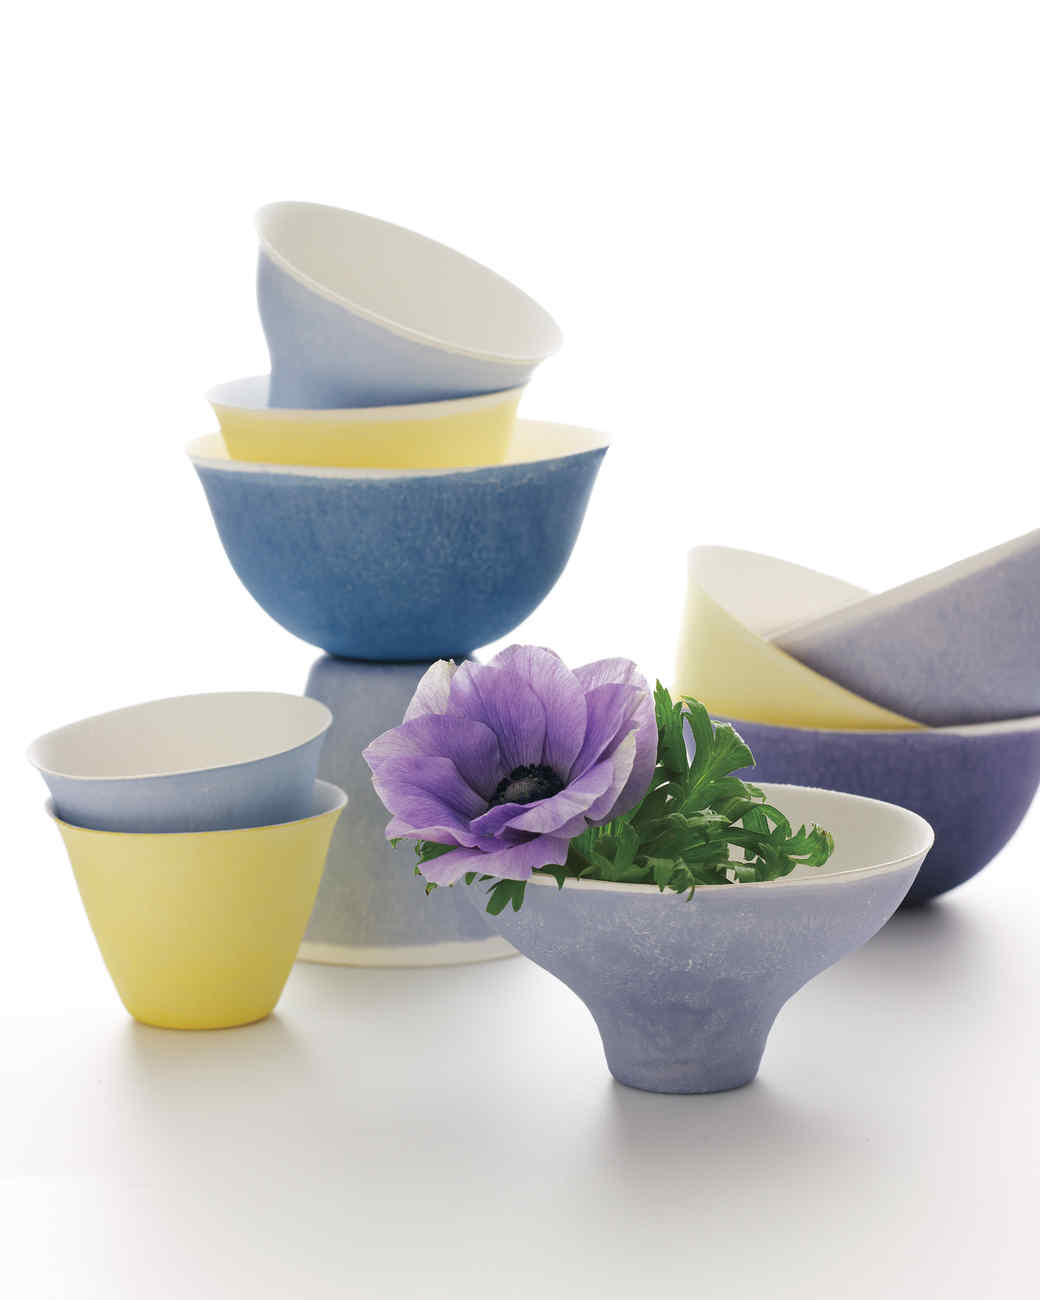 Dip-Dyed Cups and Bowls